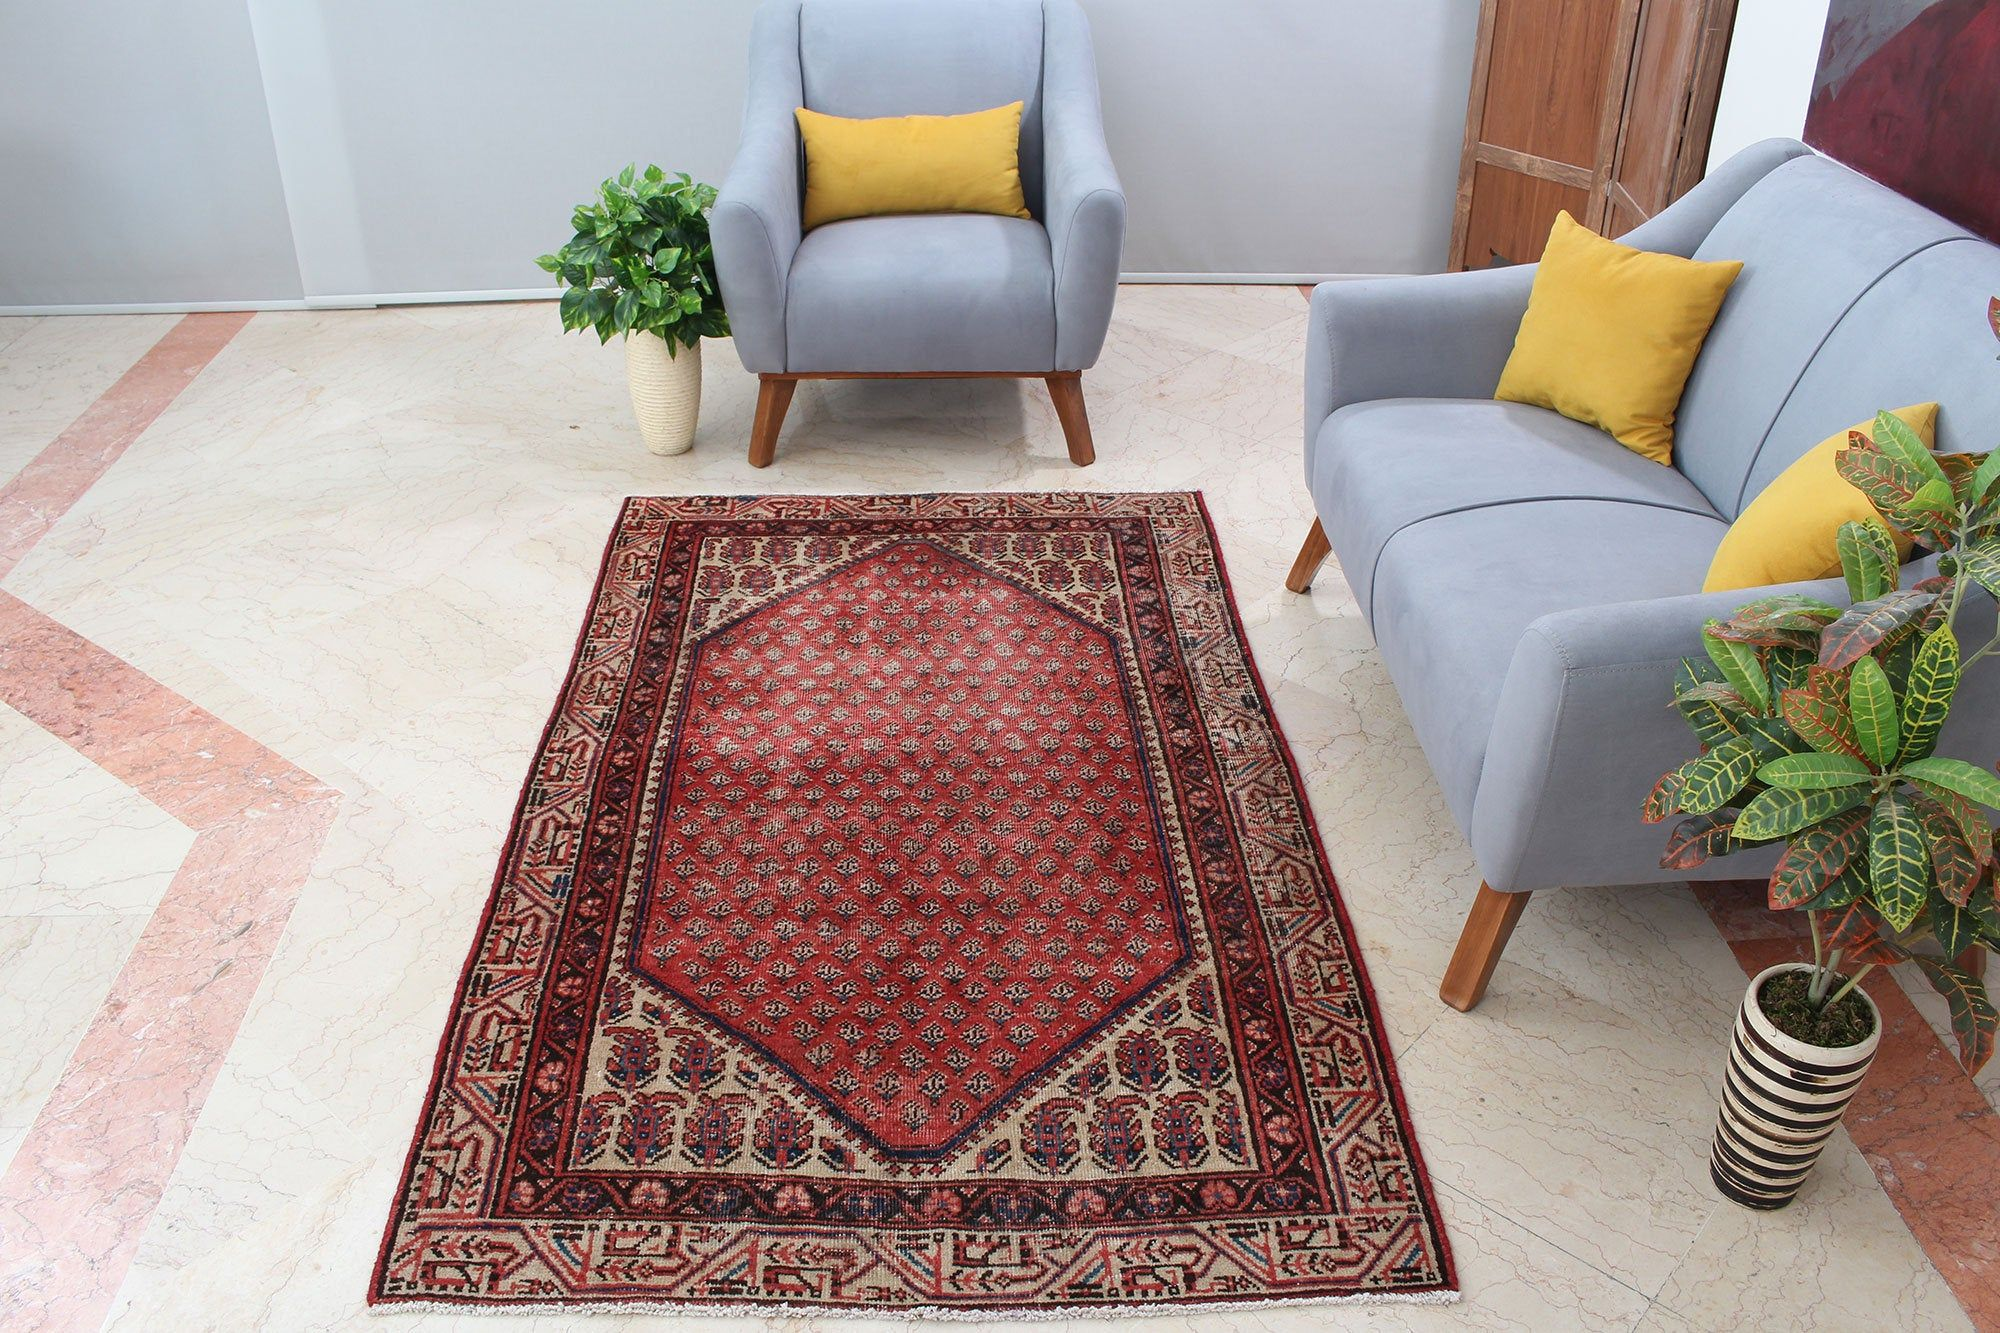 Handmade Living Room Area Rug 4x6 Rustic Vintage Turkish Red Etsy In 2020 Living Room Area Rugs Area Room Rugs 4x6 Area Rugs